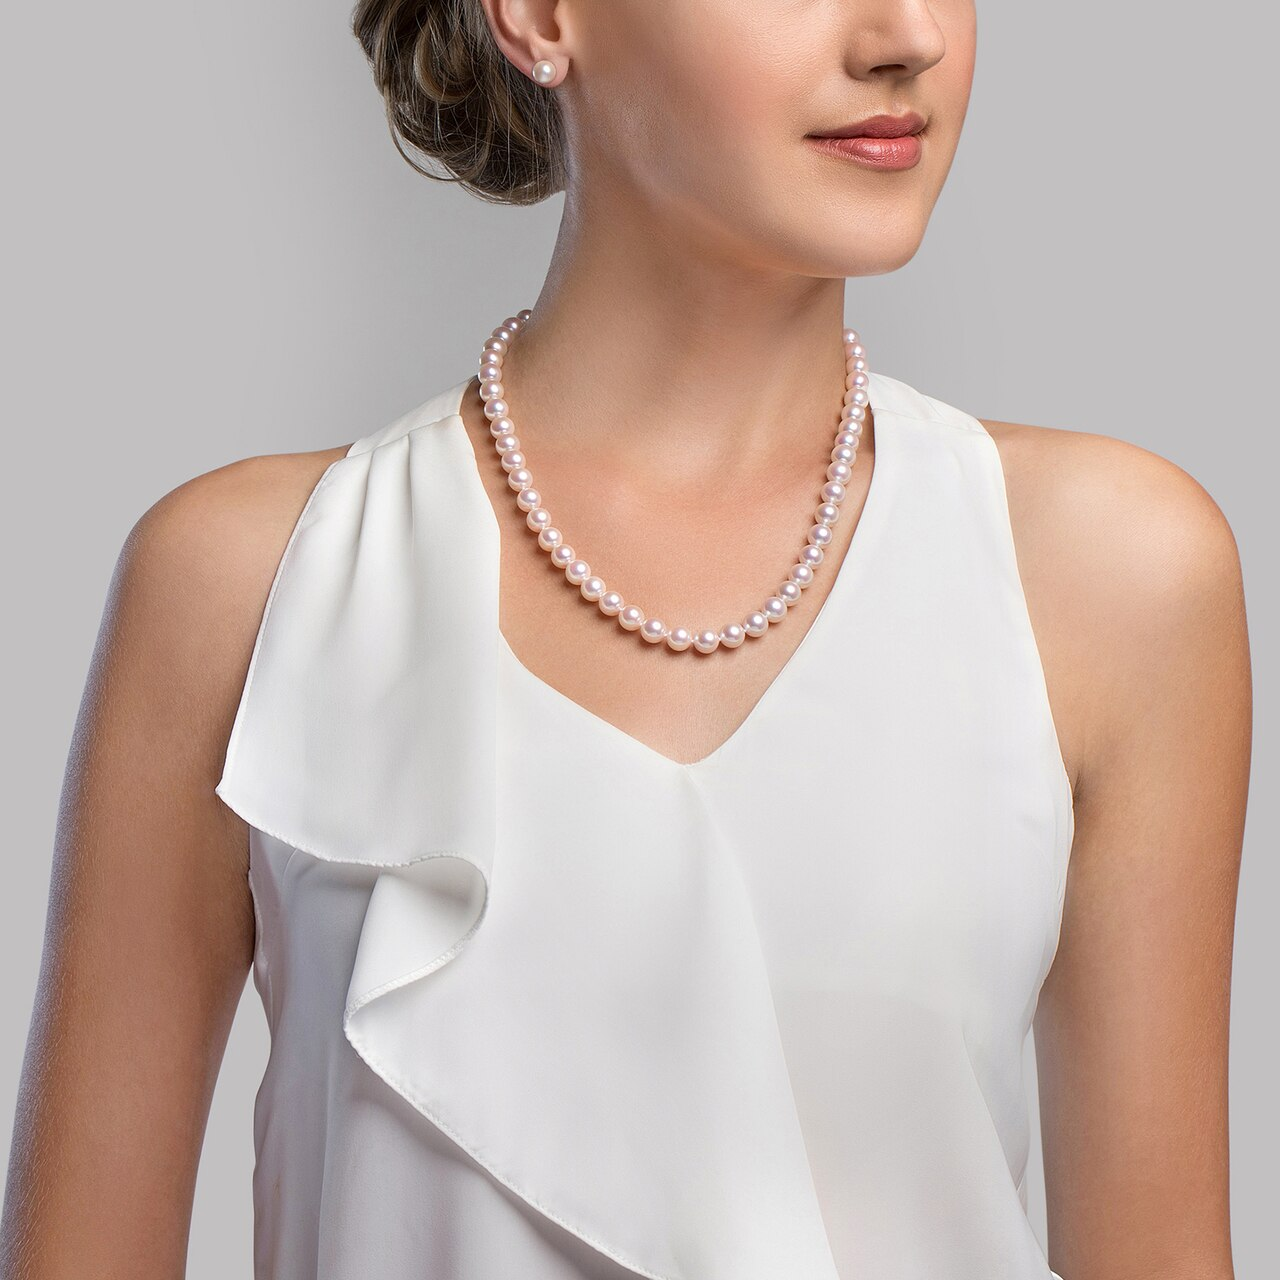 This elegant necklace features 8.5-9.0mm Hanadama Akoya pearls, handpicked for their luminous luster